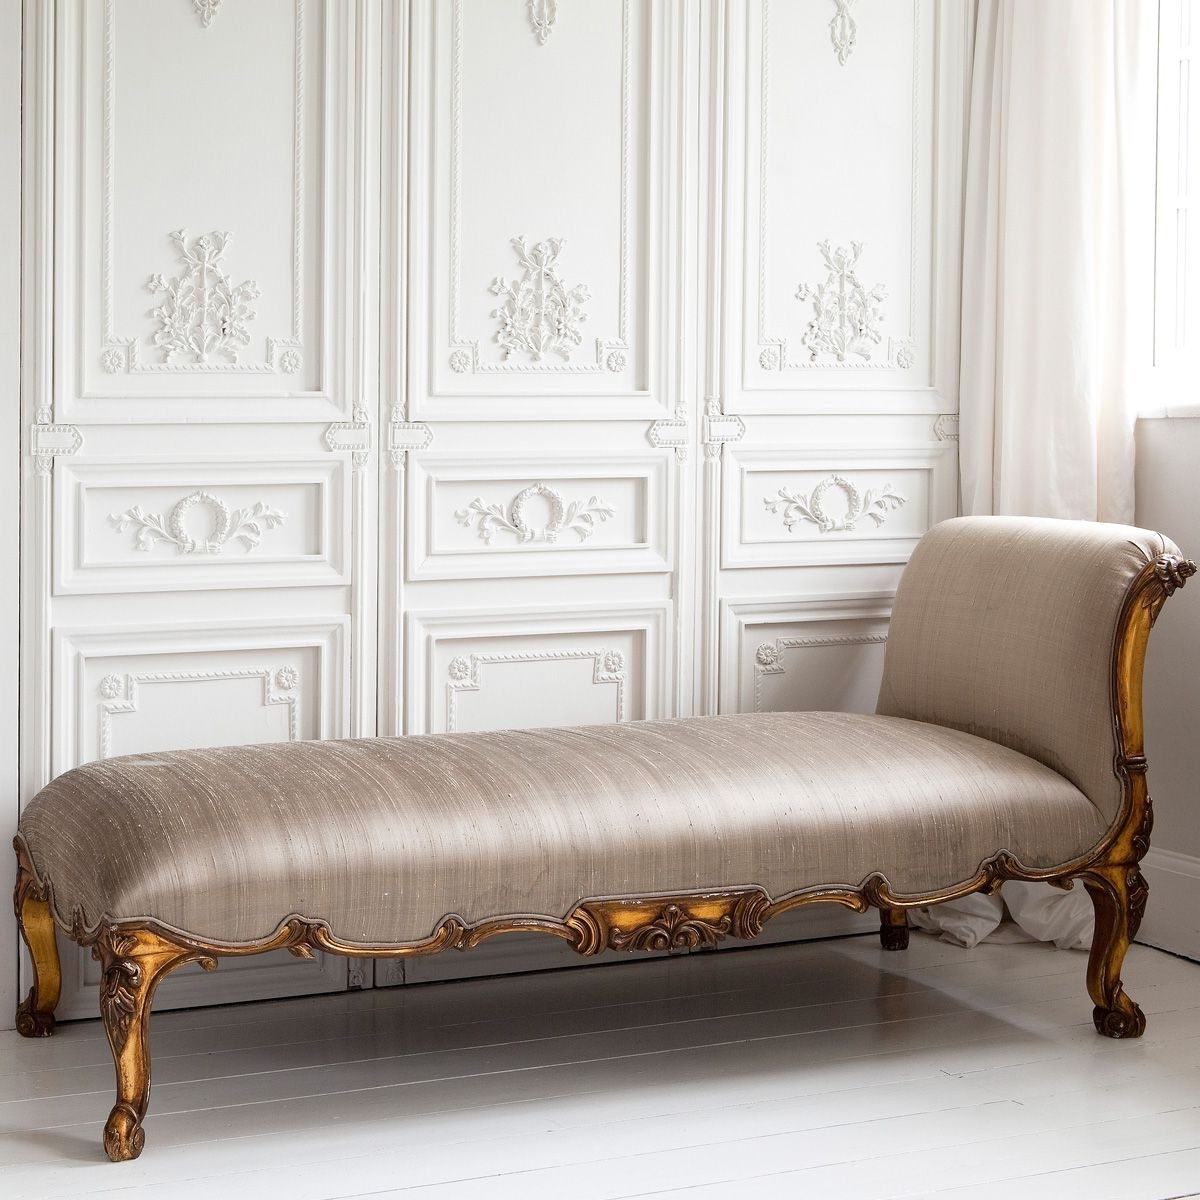 Versailles Gold Chaise Loungethe French Bedroom Company Pertaining To Recent Gold Chaise Lounge Chairs (View 14 of 15)